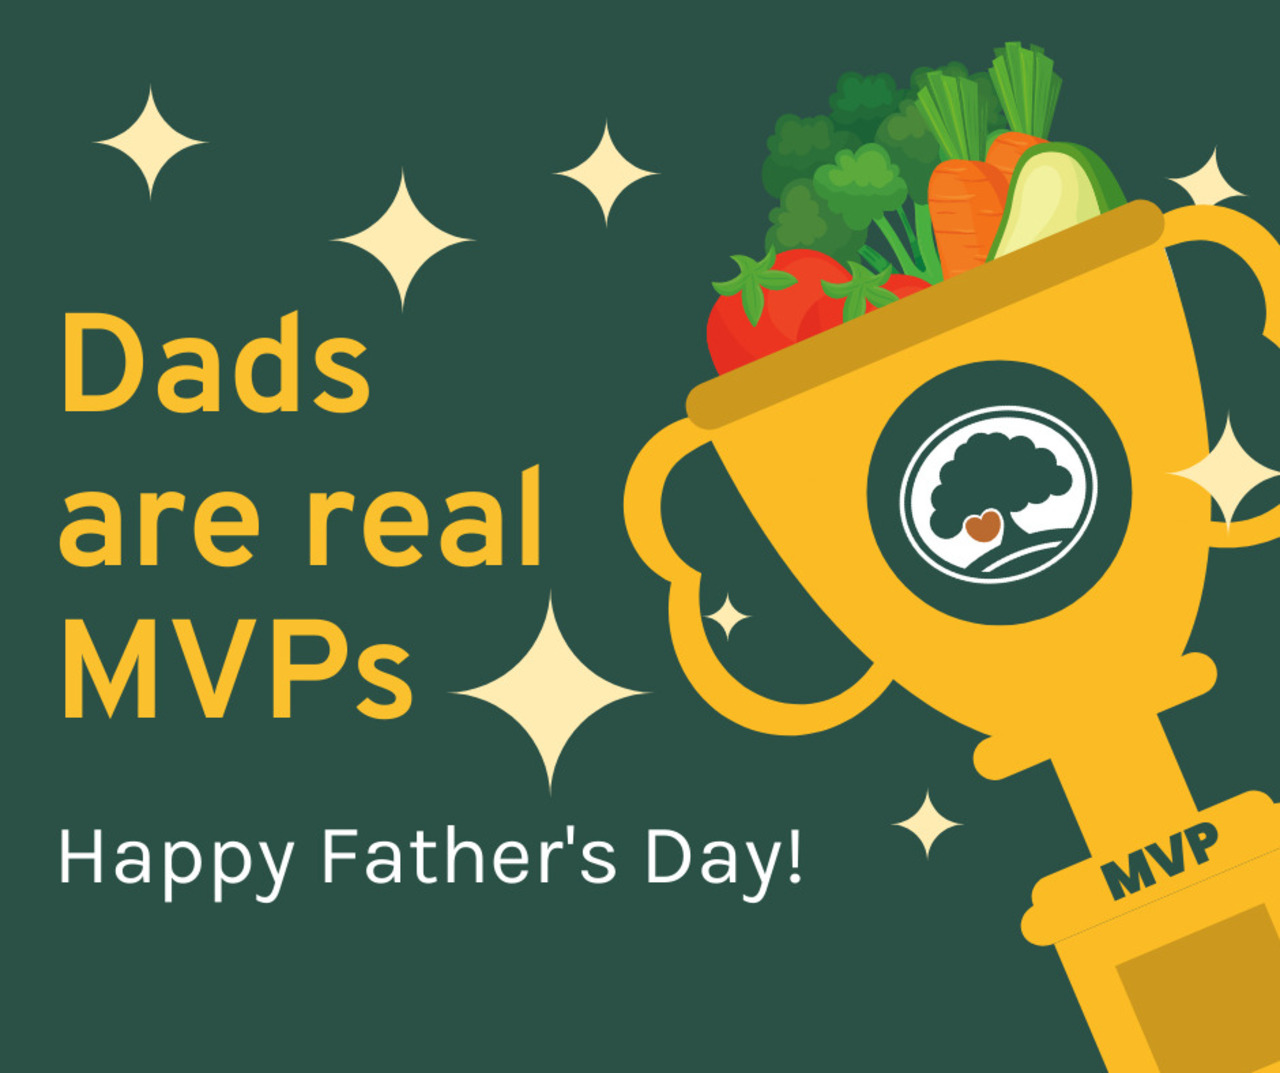 Honor Dad this Father's Day by Helping to Feed a Neighbor